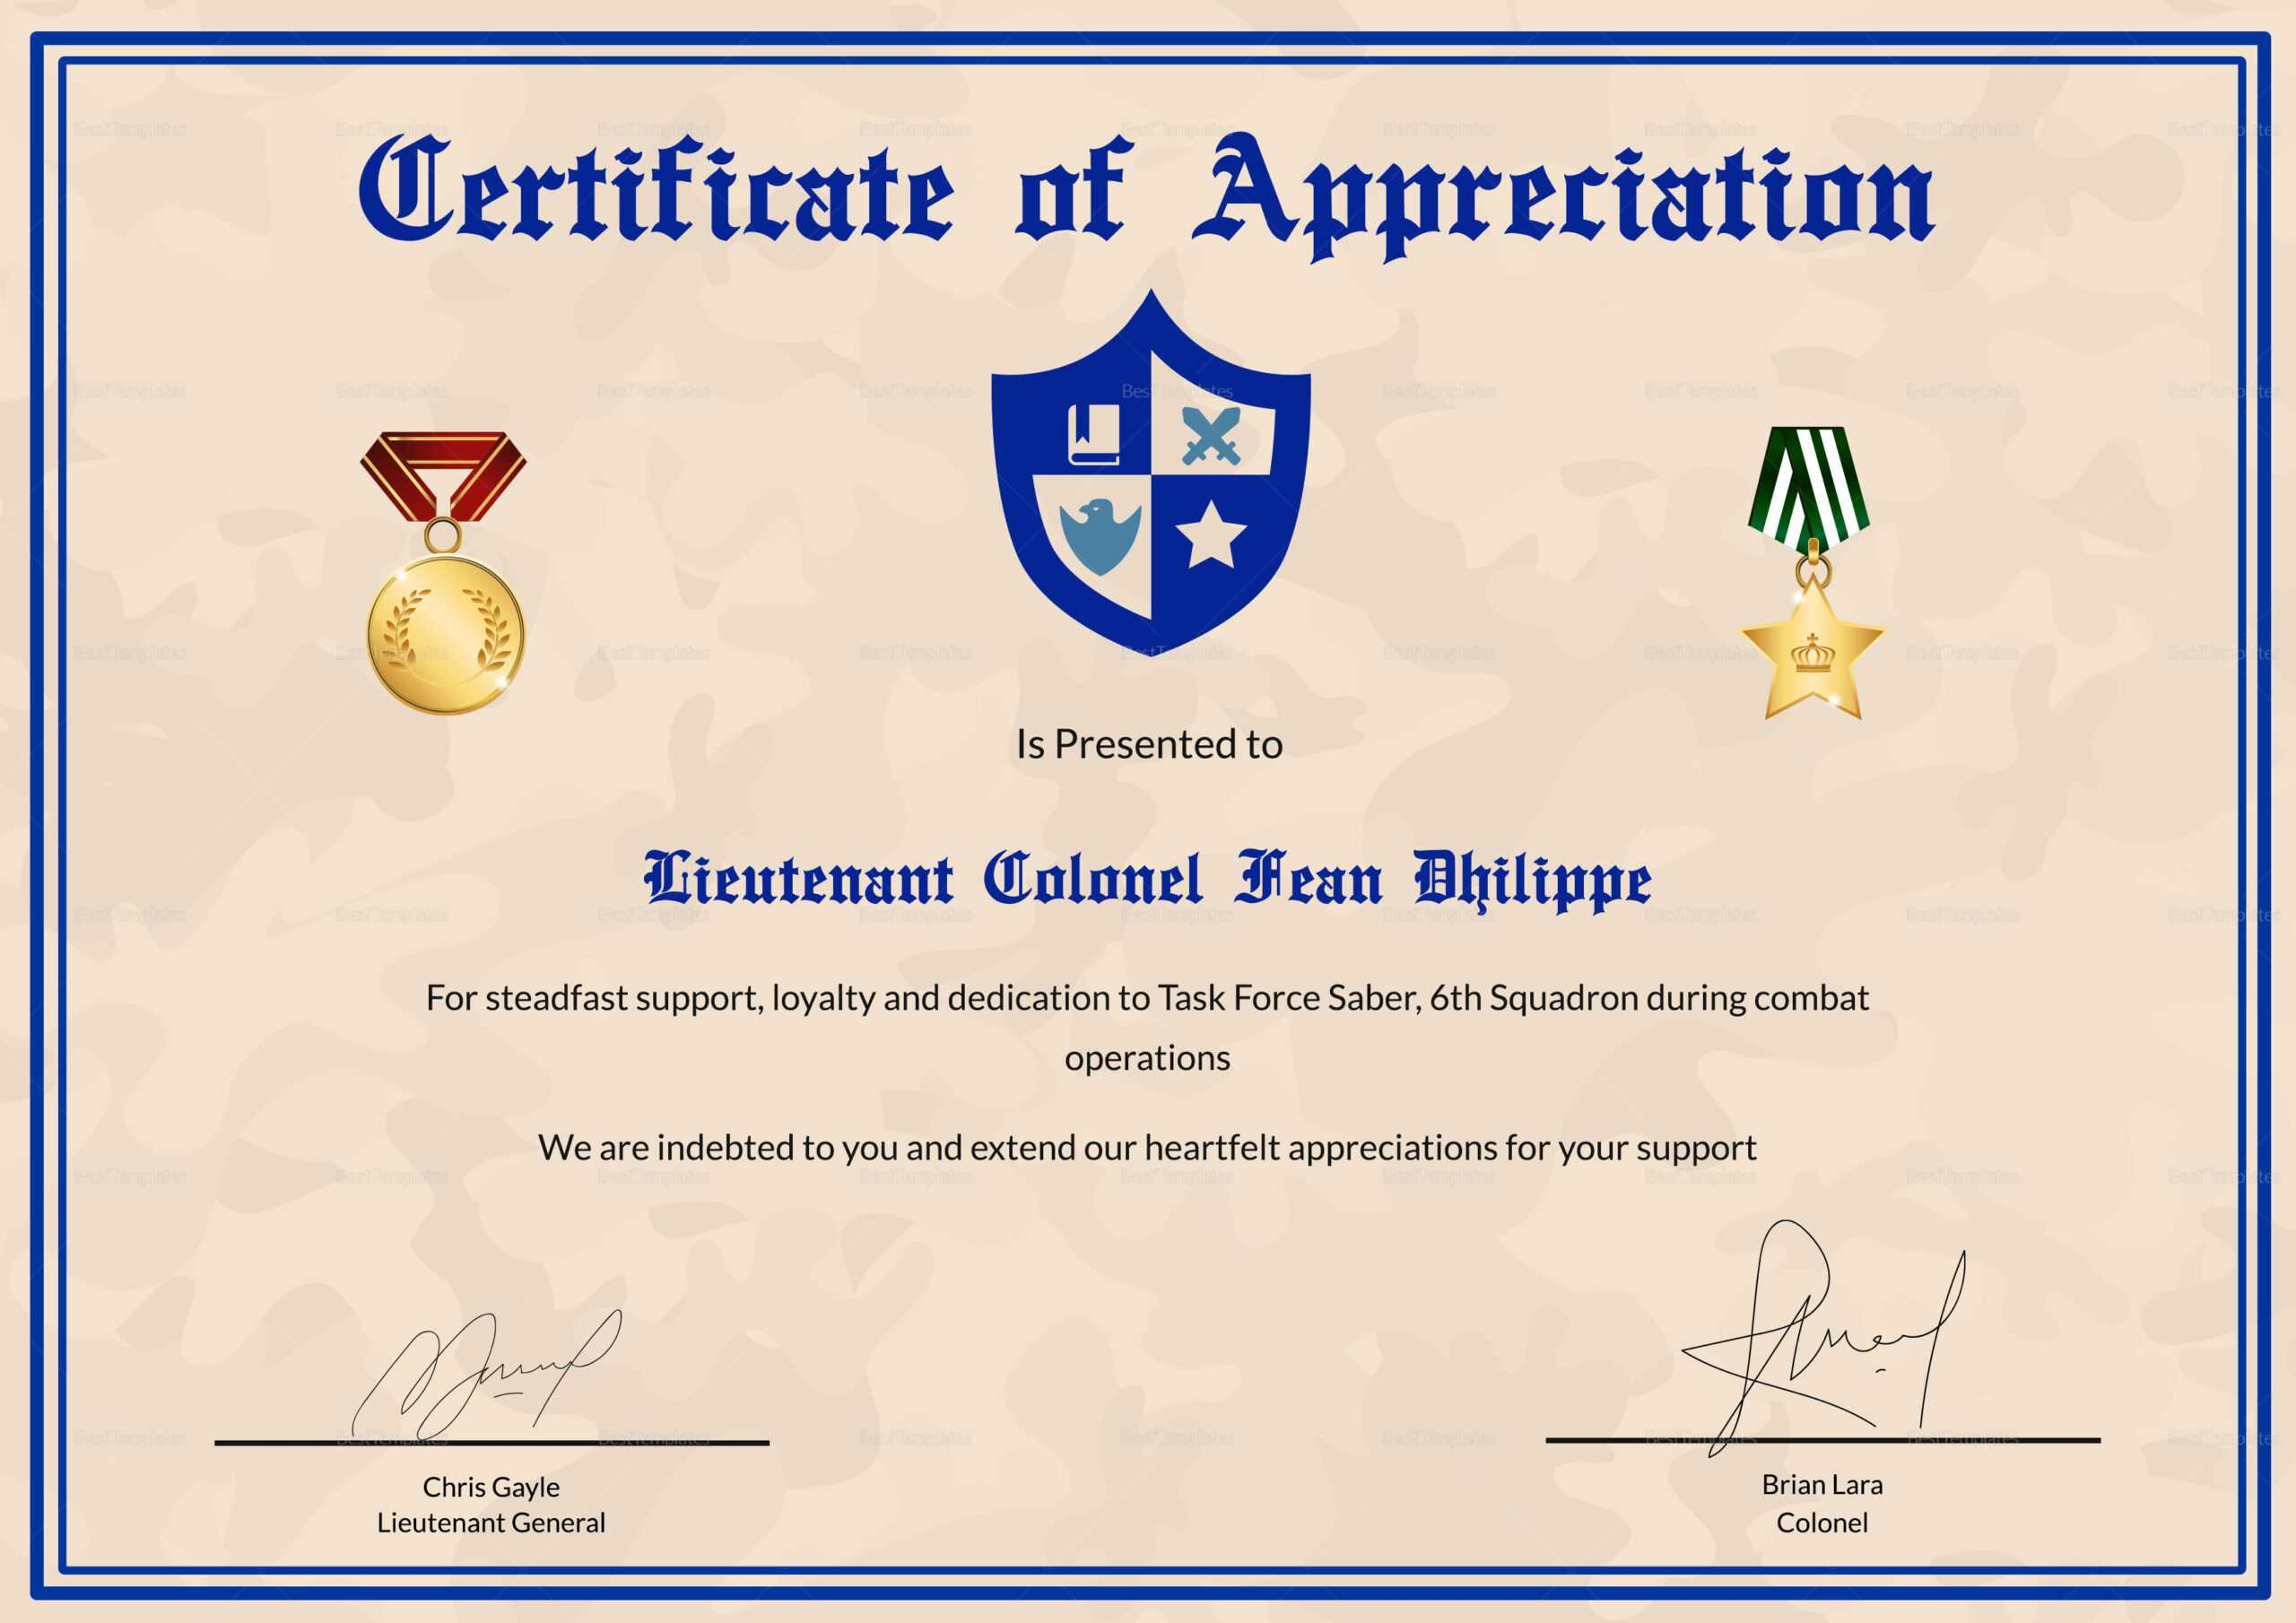 Army Certificate Of Appreciation Template Regarding Army Certificate Of Appreciation Template